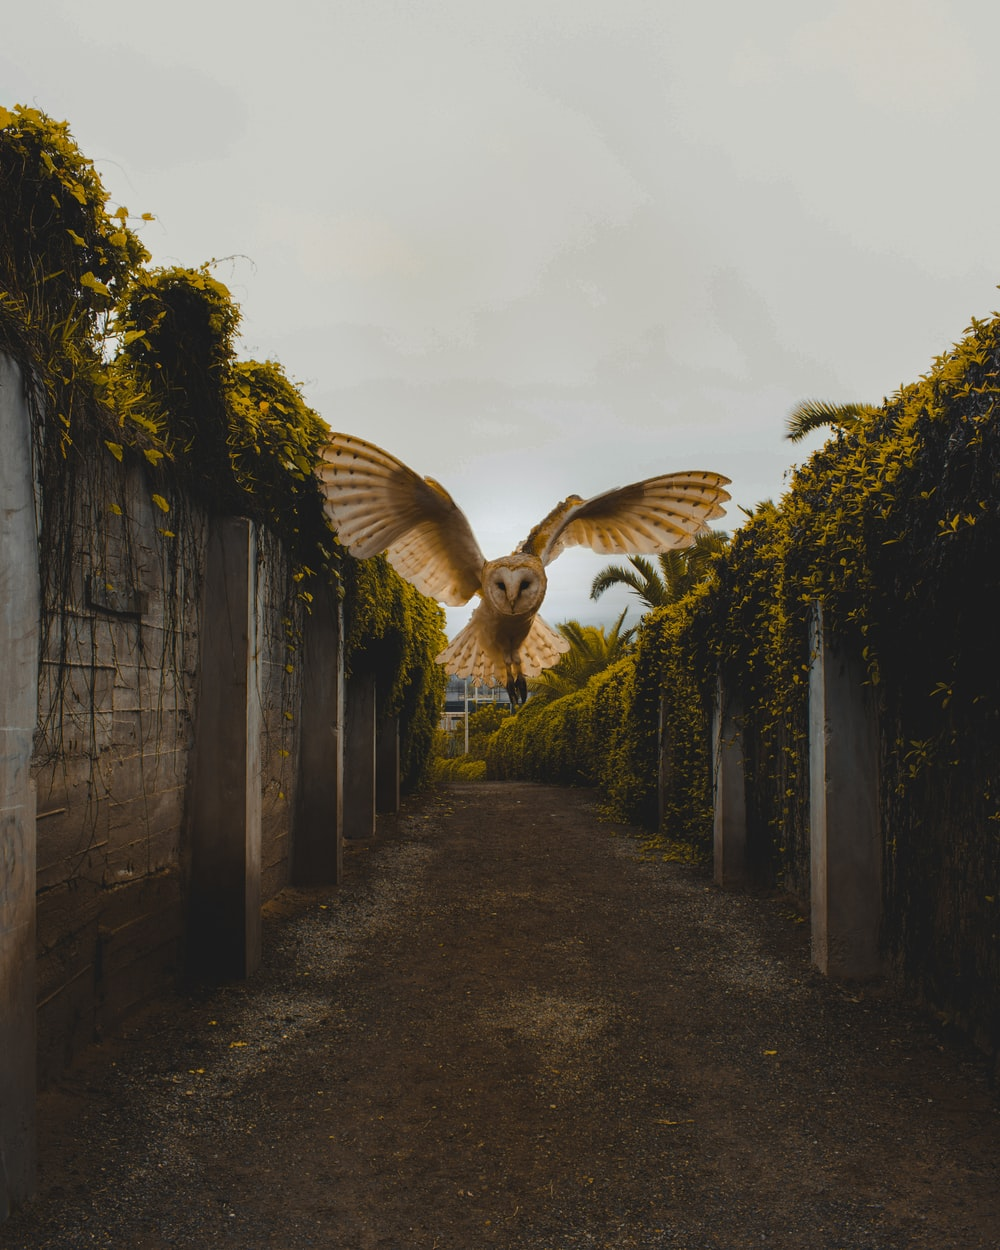 Owl Flying Between Walls